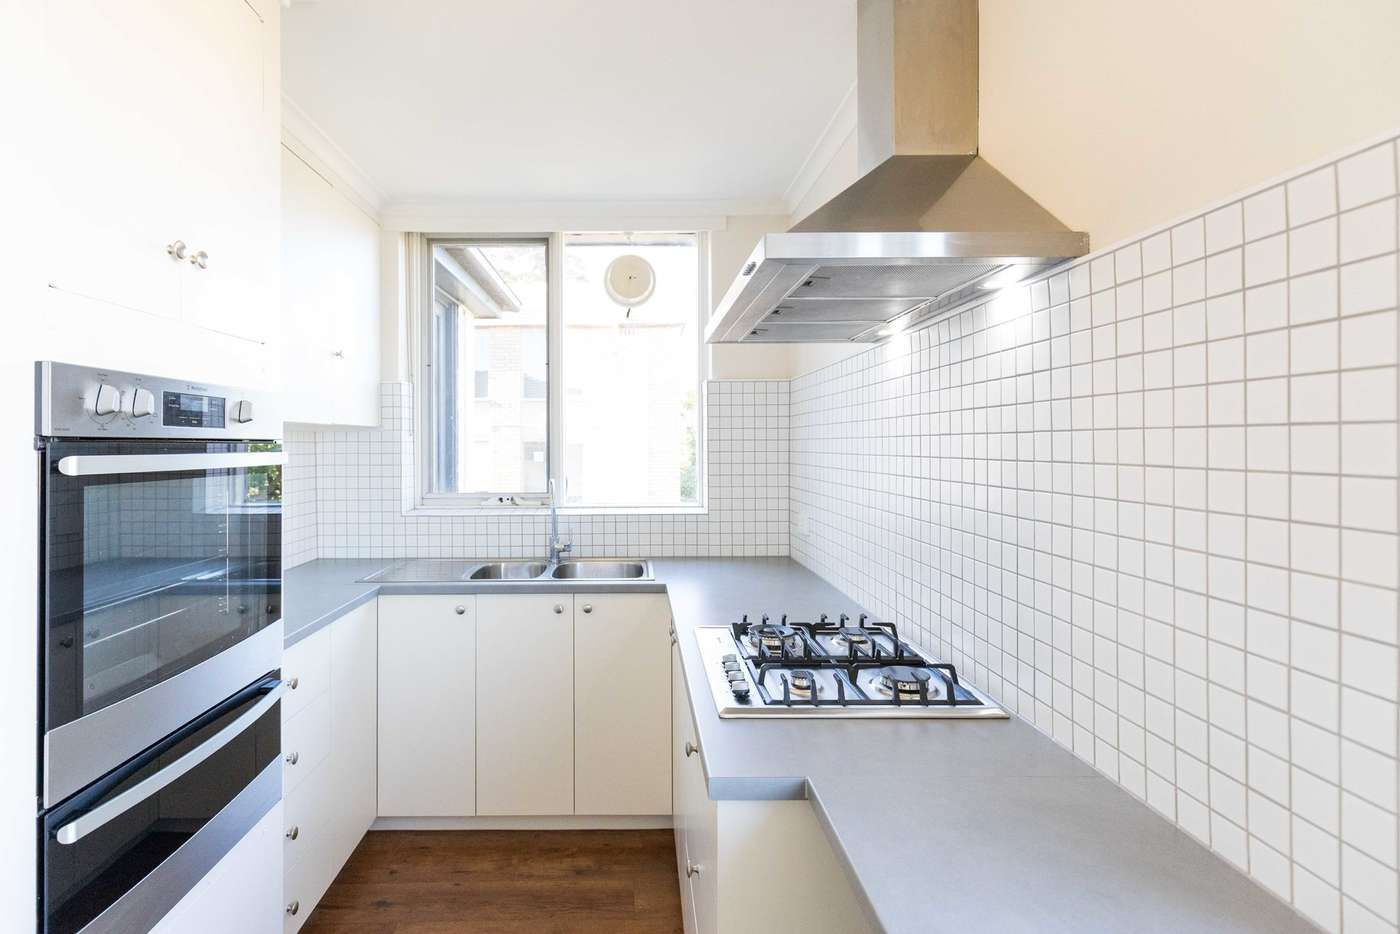 Main view of Homely apartment listing, 13/31 Kensington Road, South Yarra VIC 3141